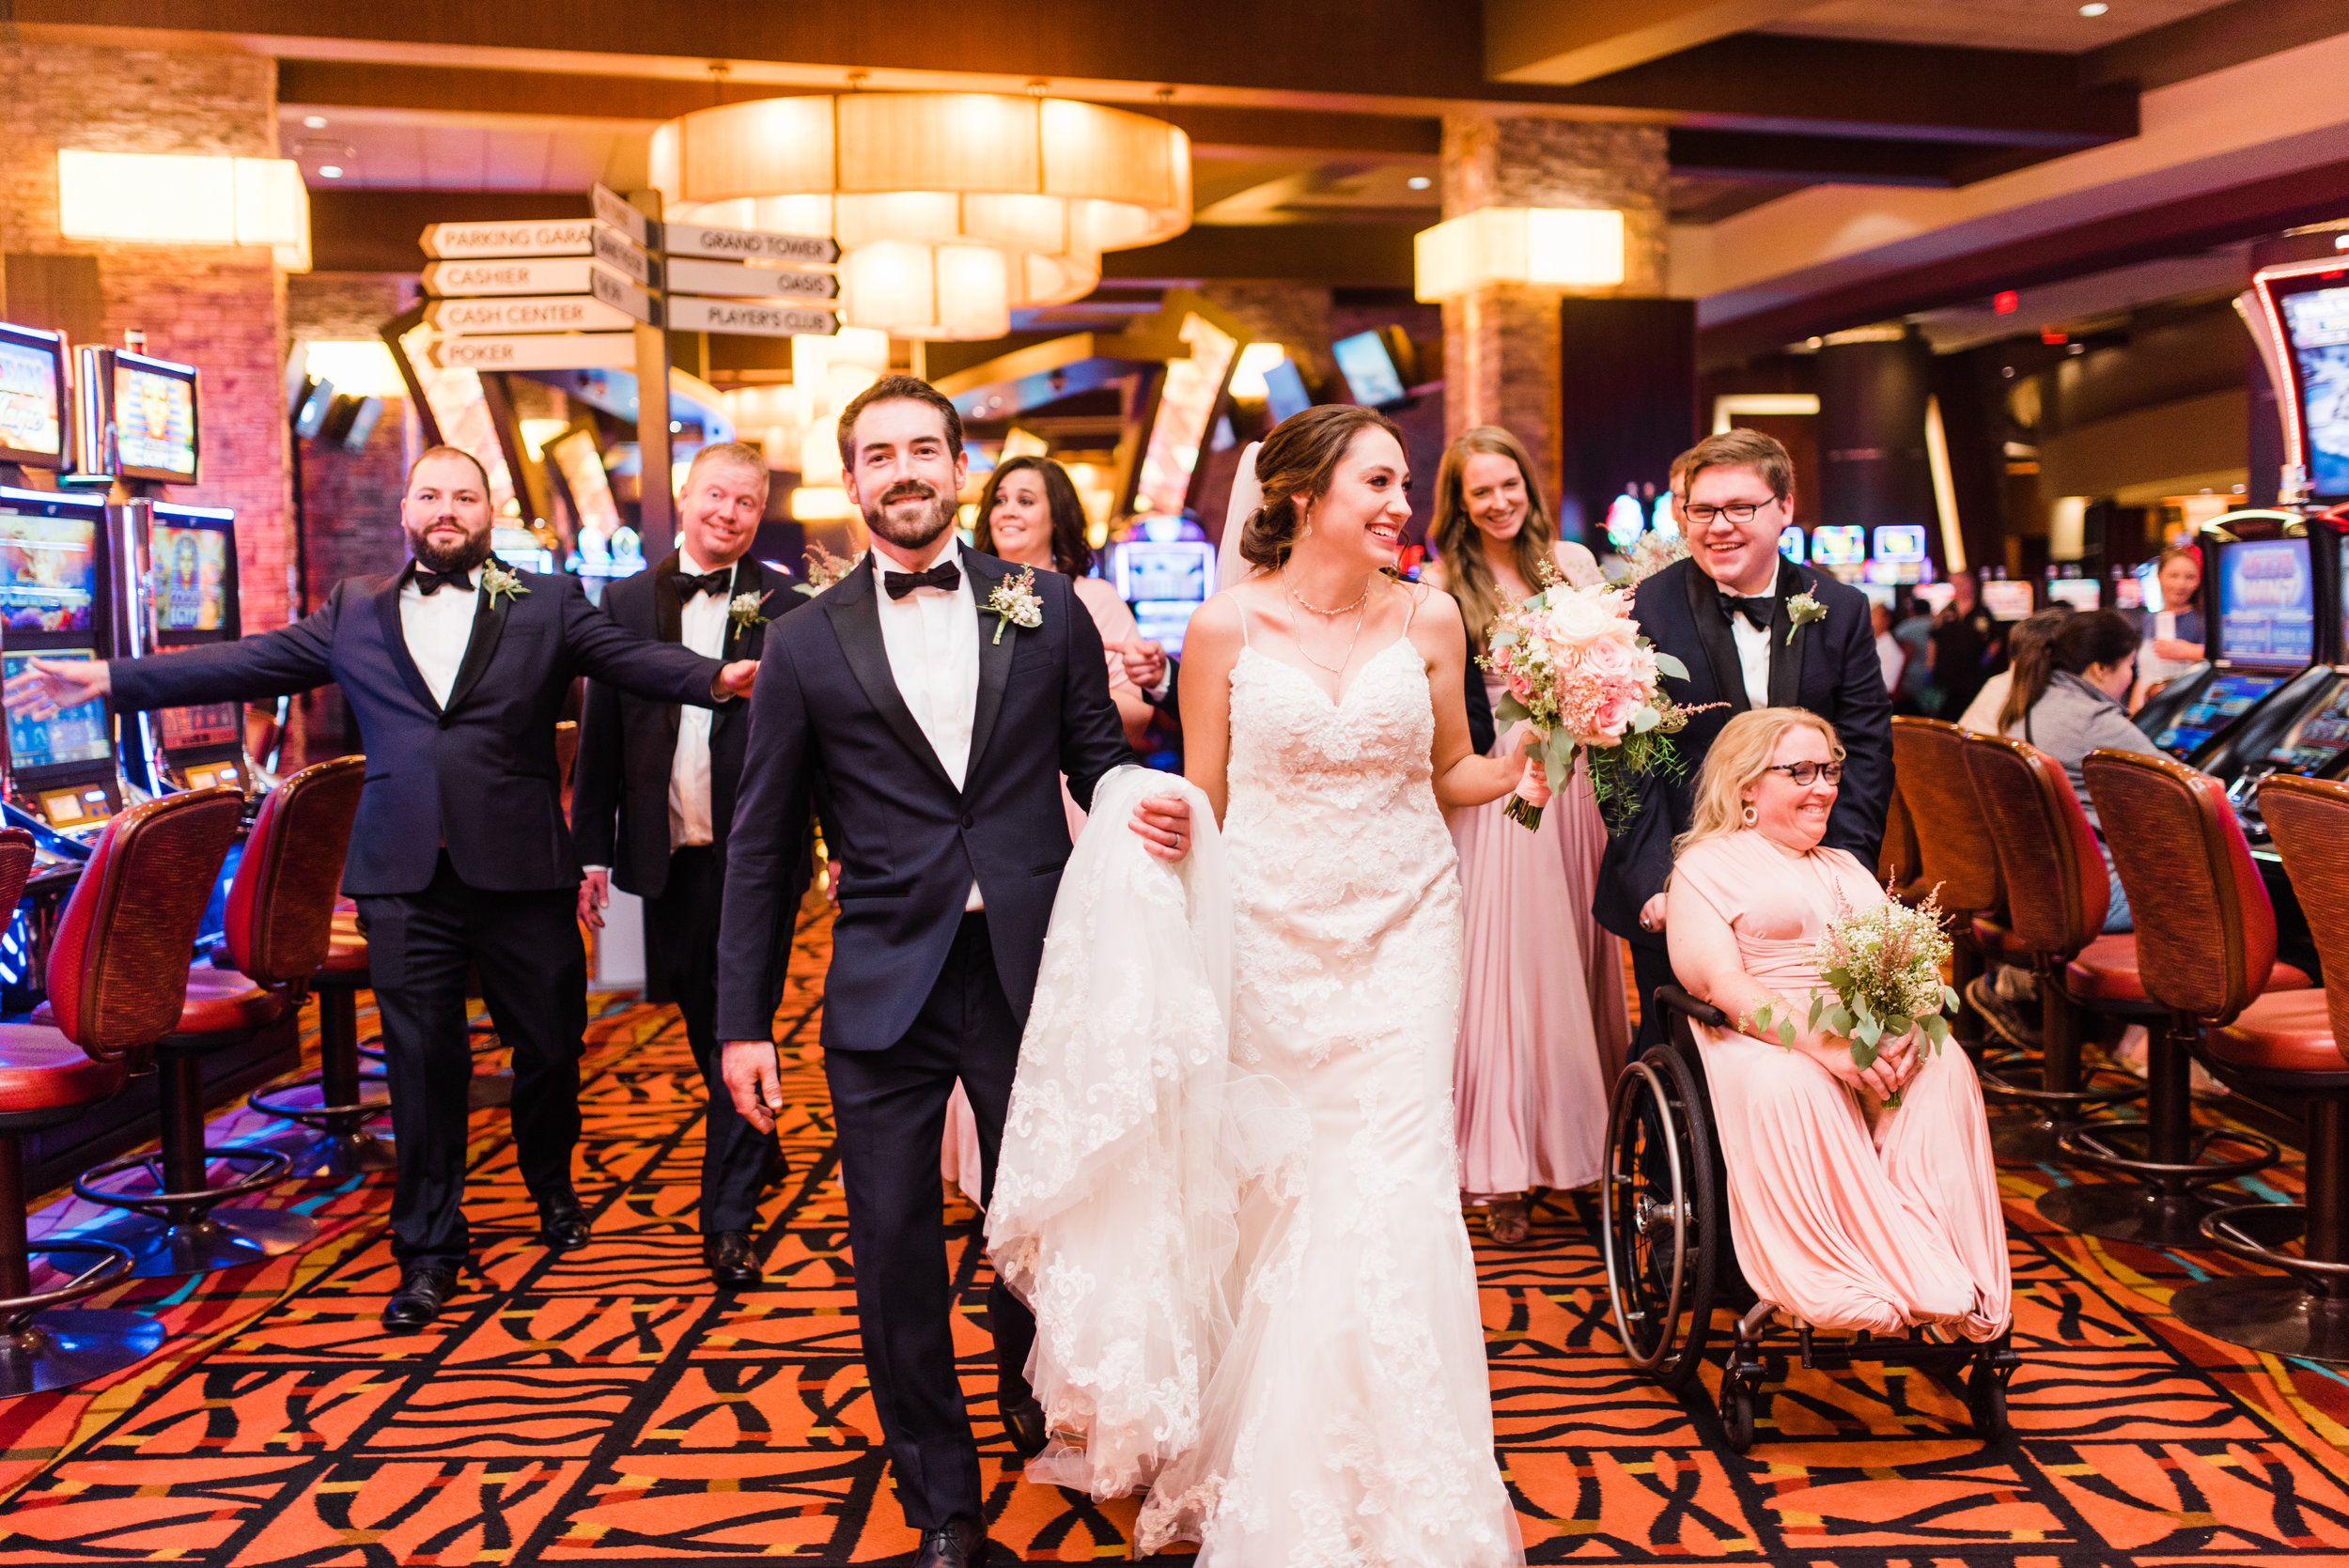 Choctaw Casino and Resorts Oklahoma Wedding - The Overwhelmed Bride Wedding Ideas Blog